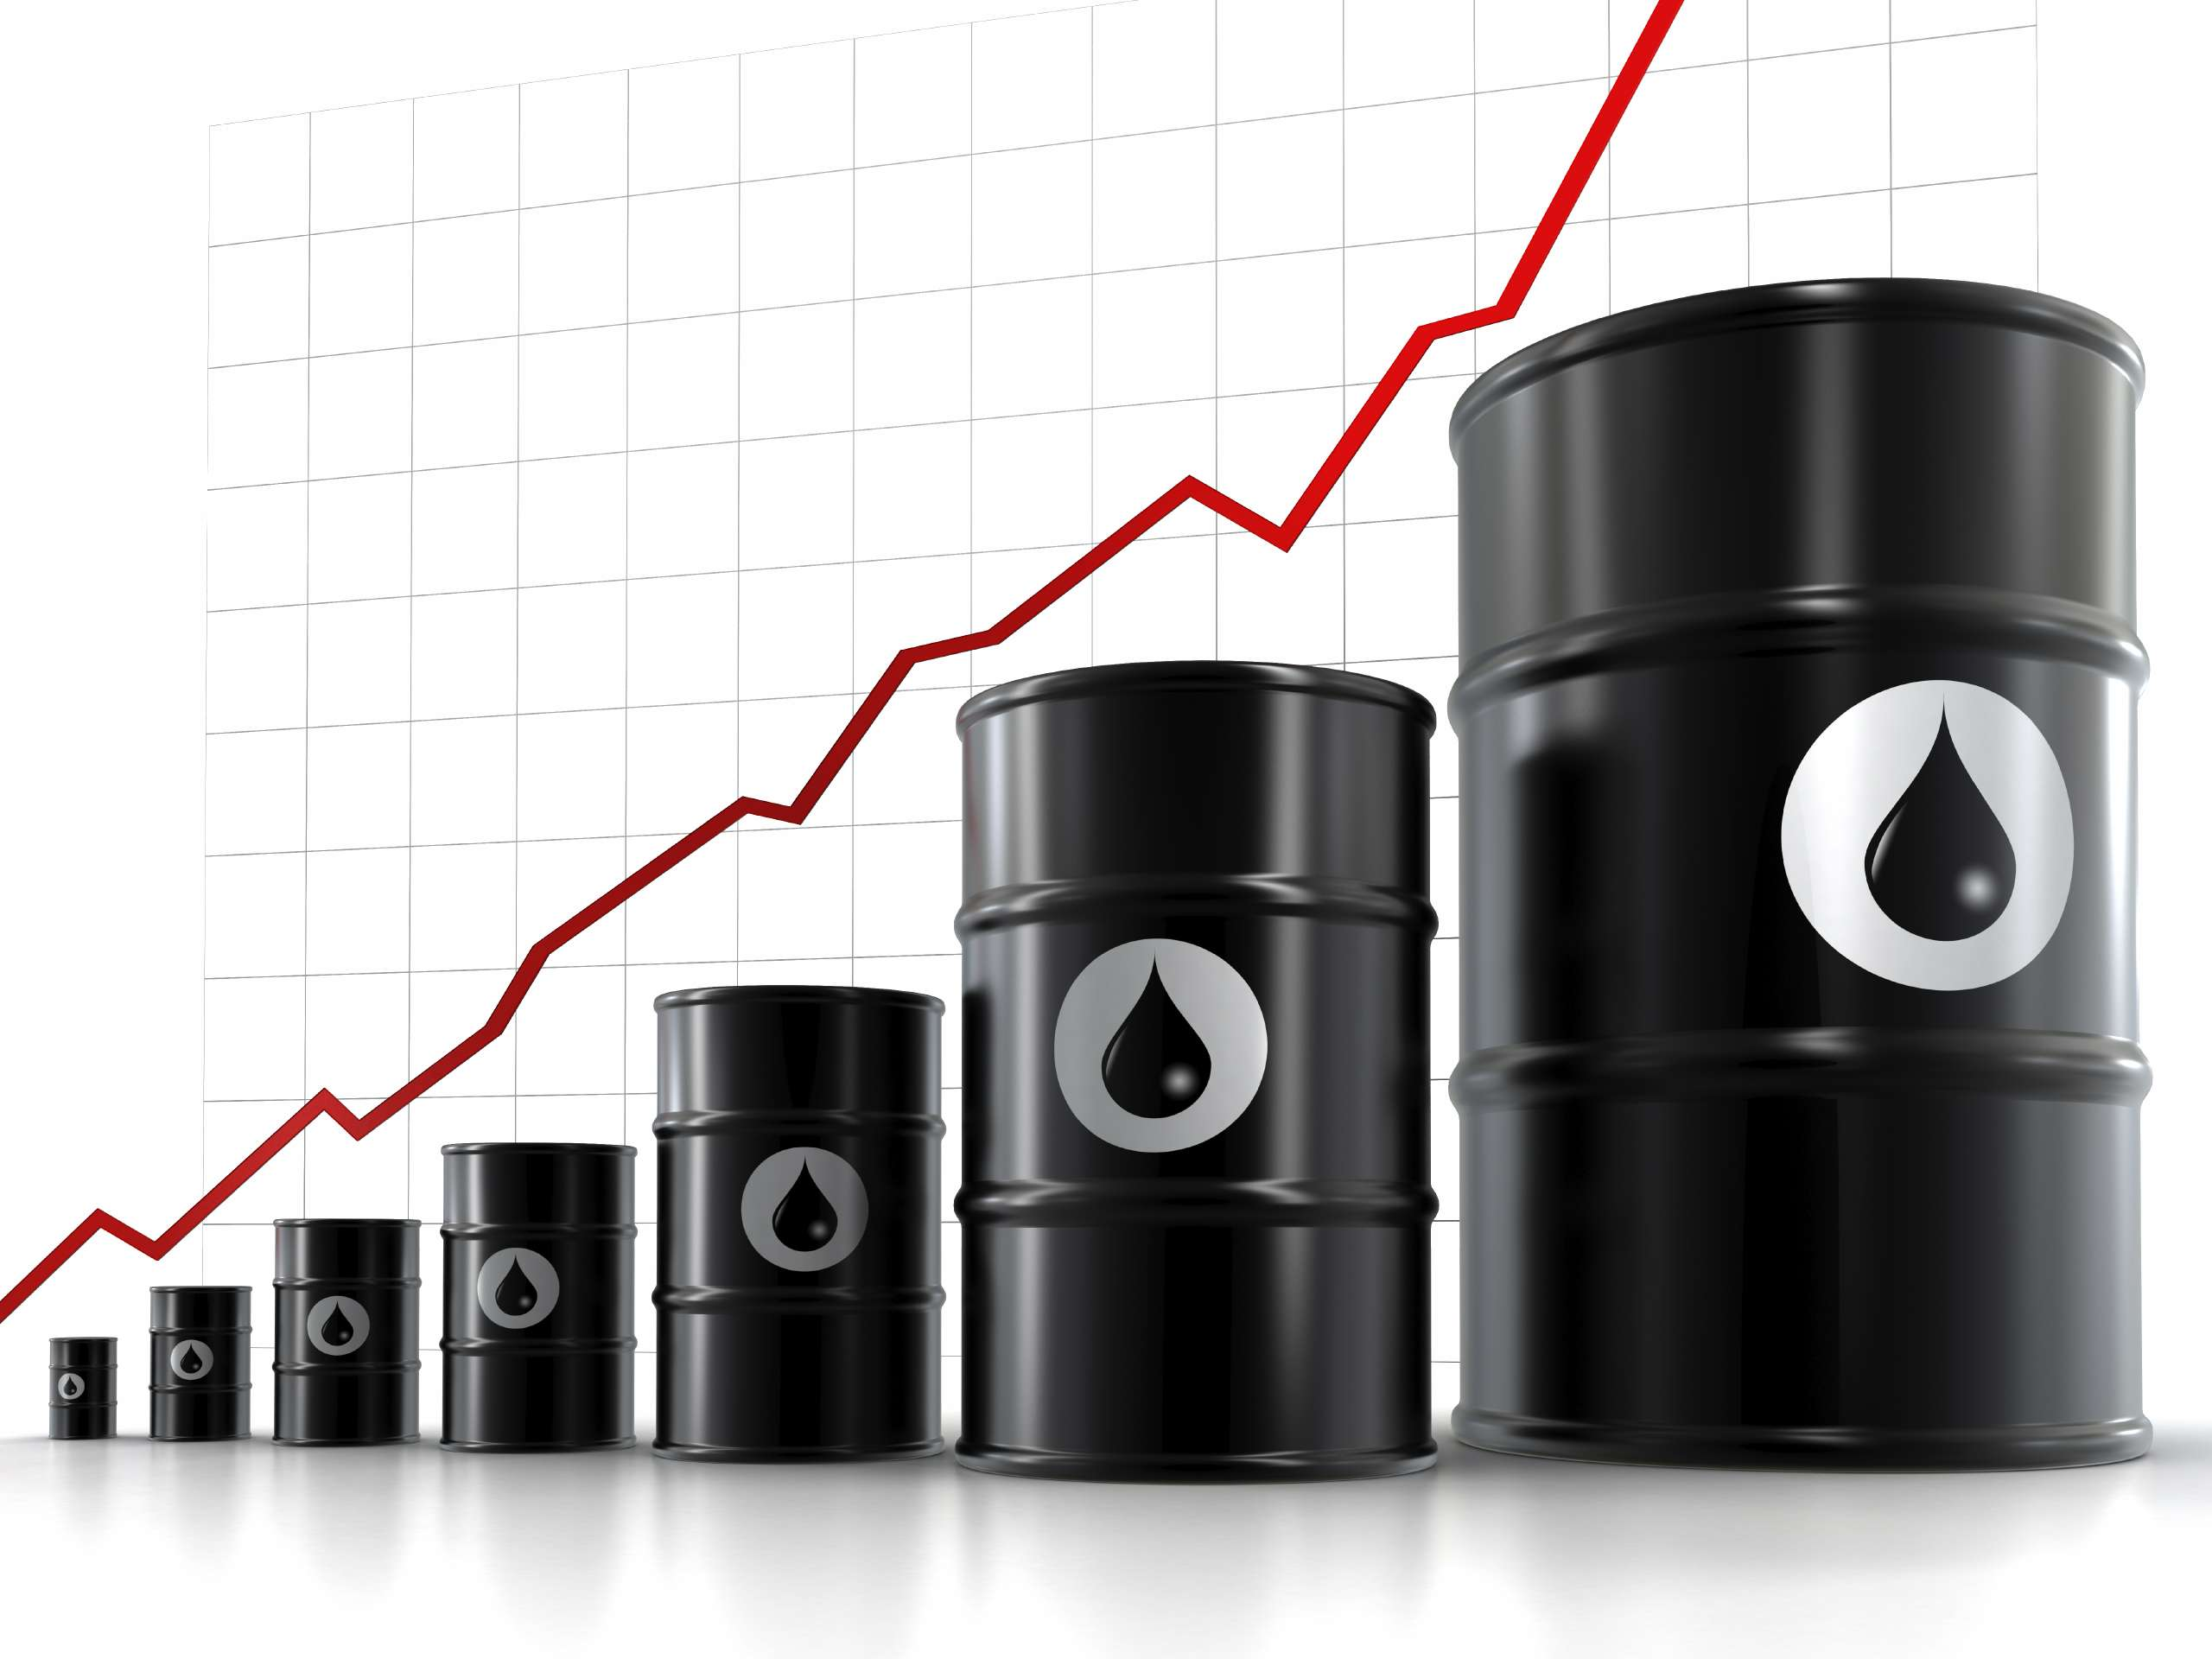 Oil hits Month-long High